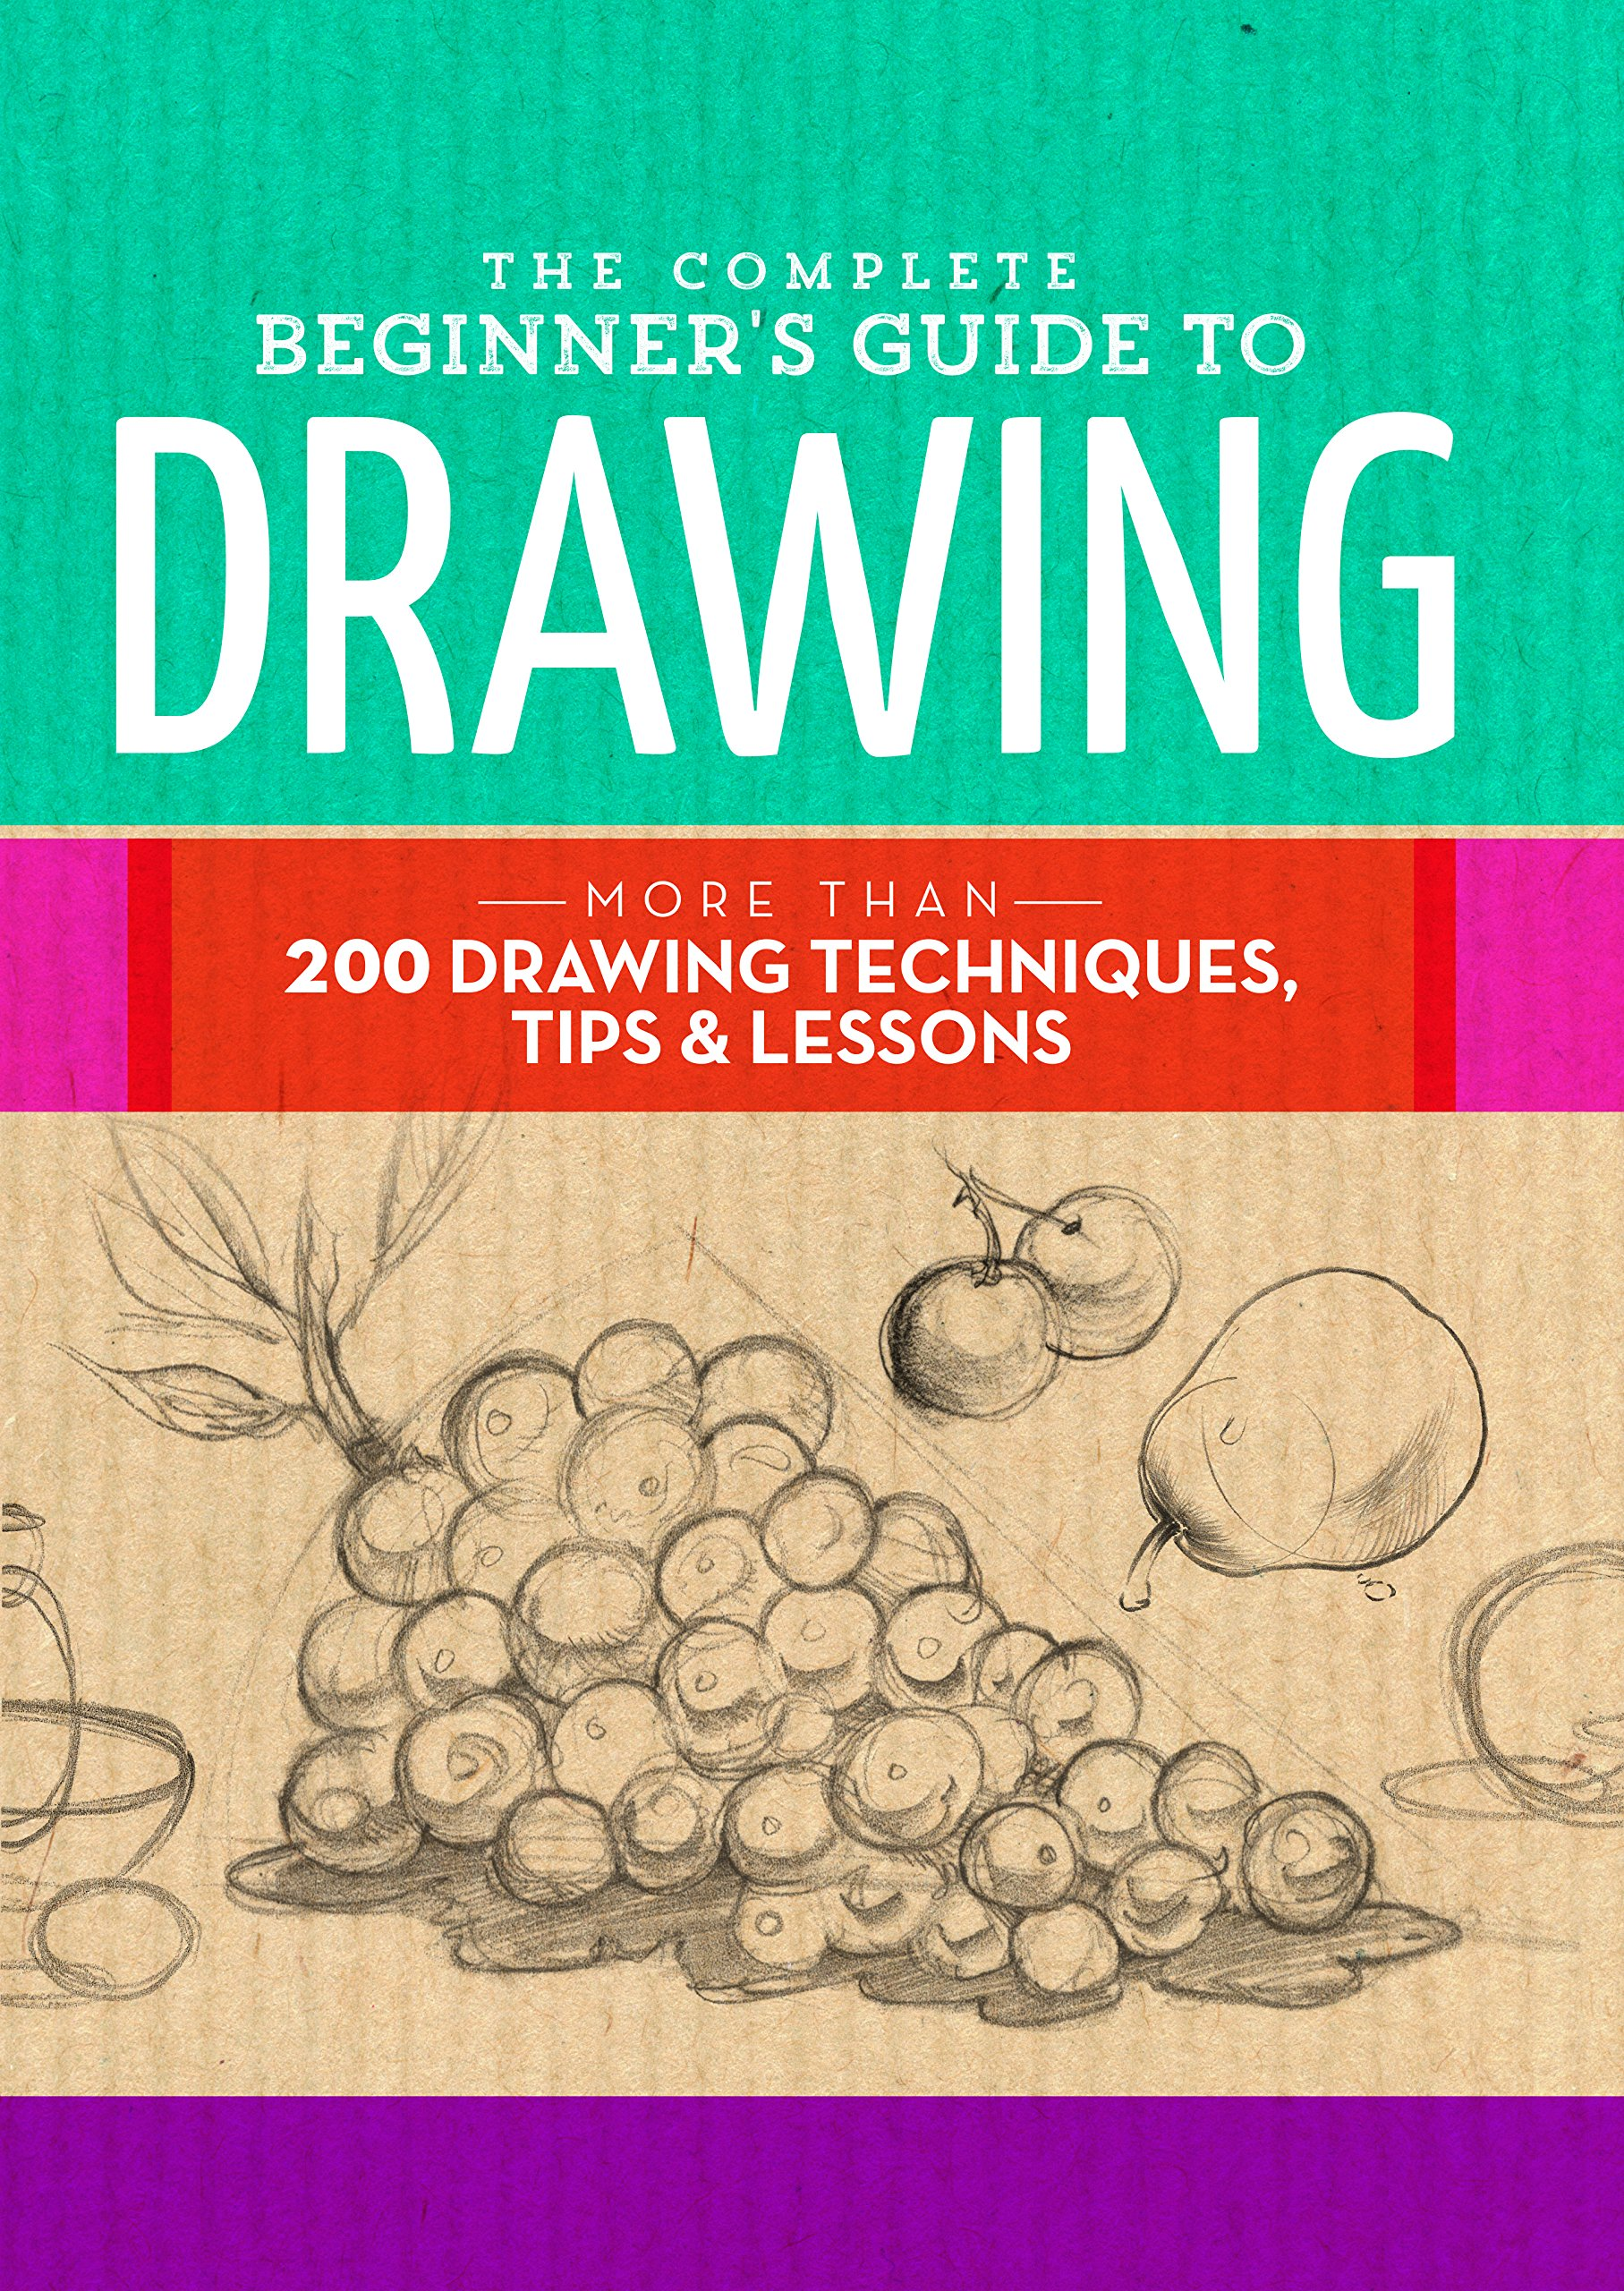 The Complete Beginner's Guide to Drawing: More than 200 drawing techniques, tips & lessons (The Complete Book of …)